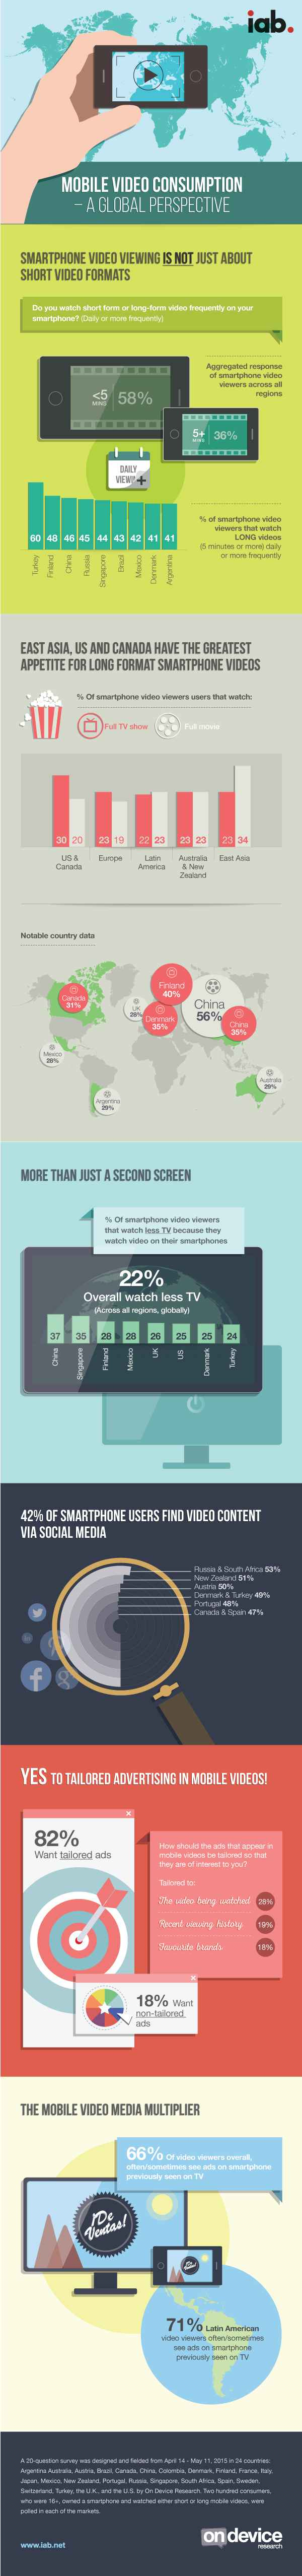 IAB-Global-Mobile-Video-Usage-2015-Infographic